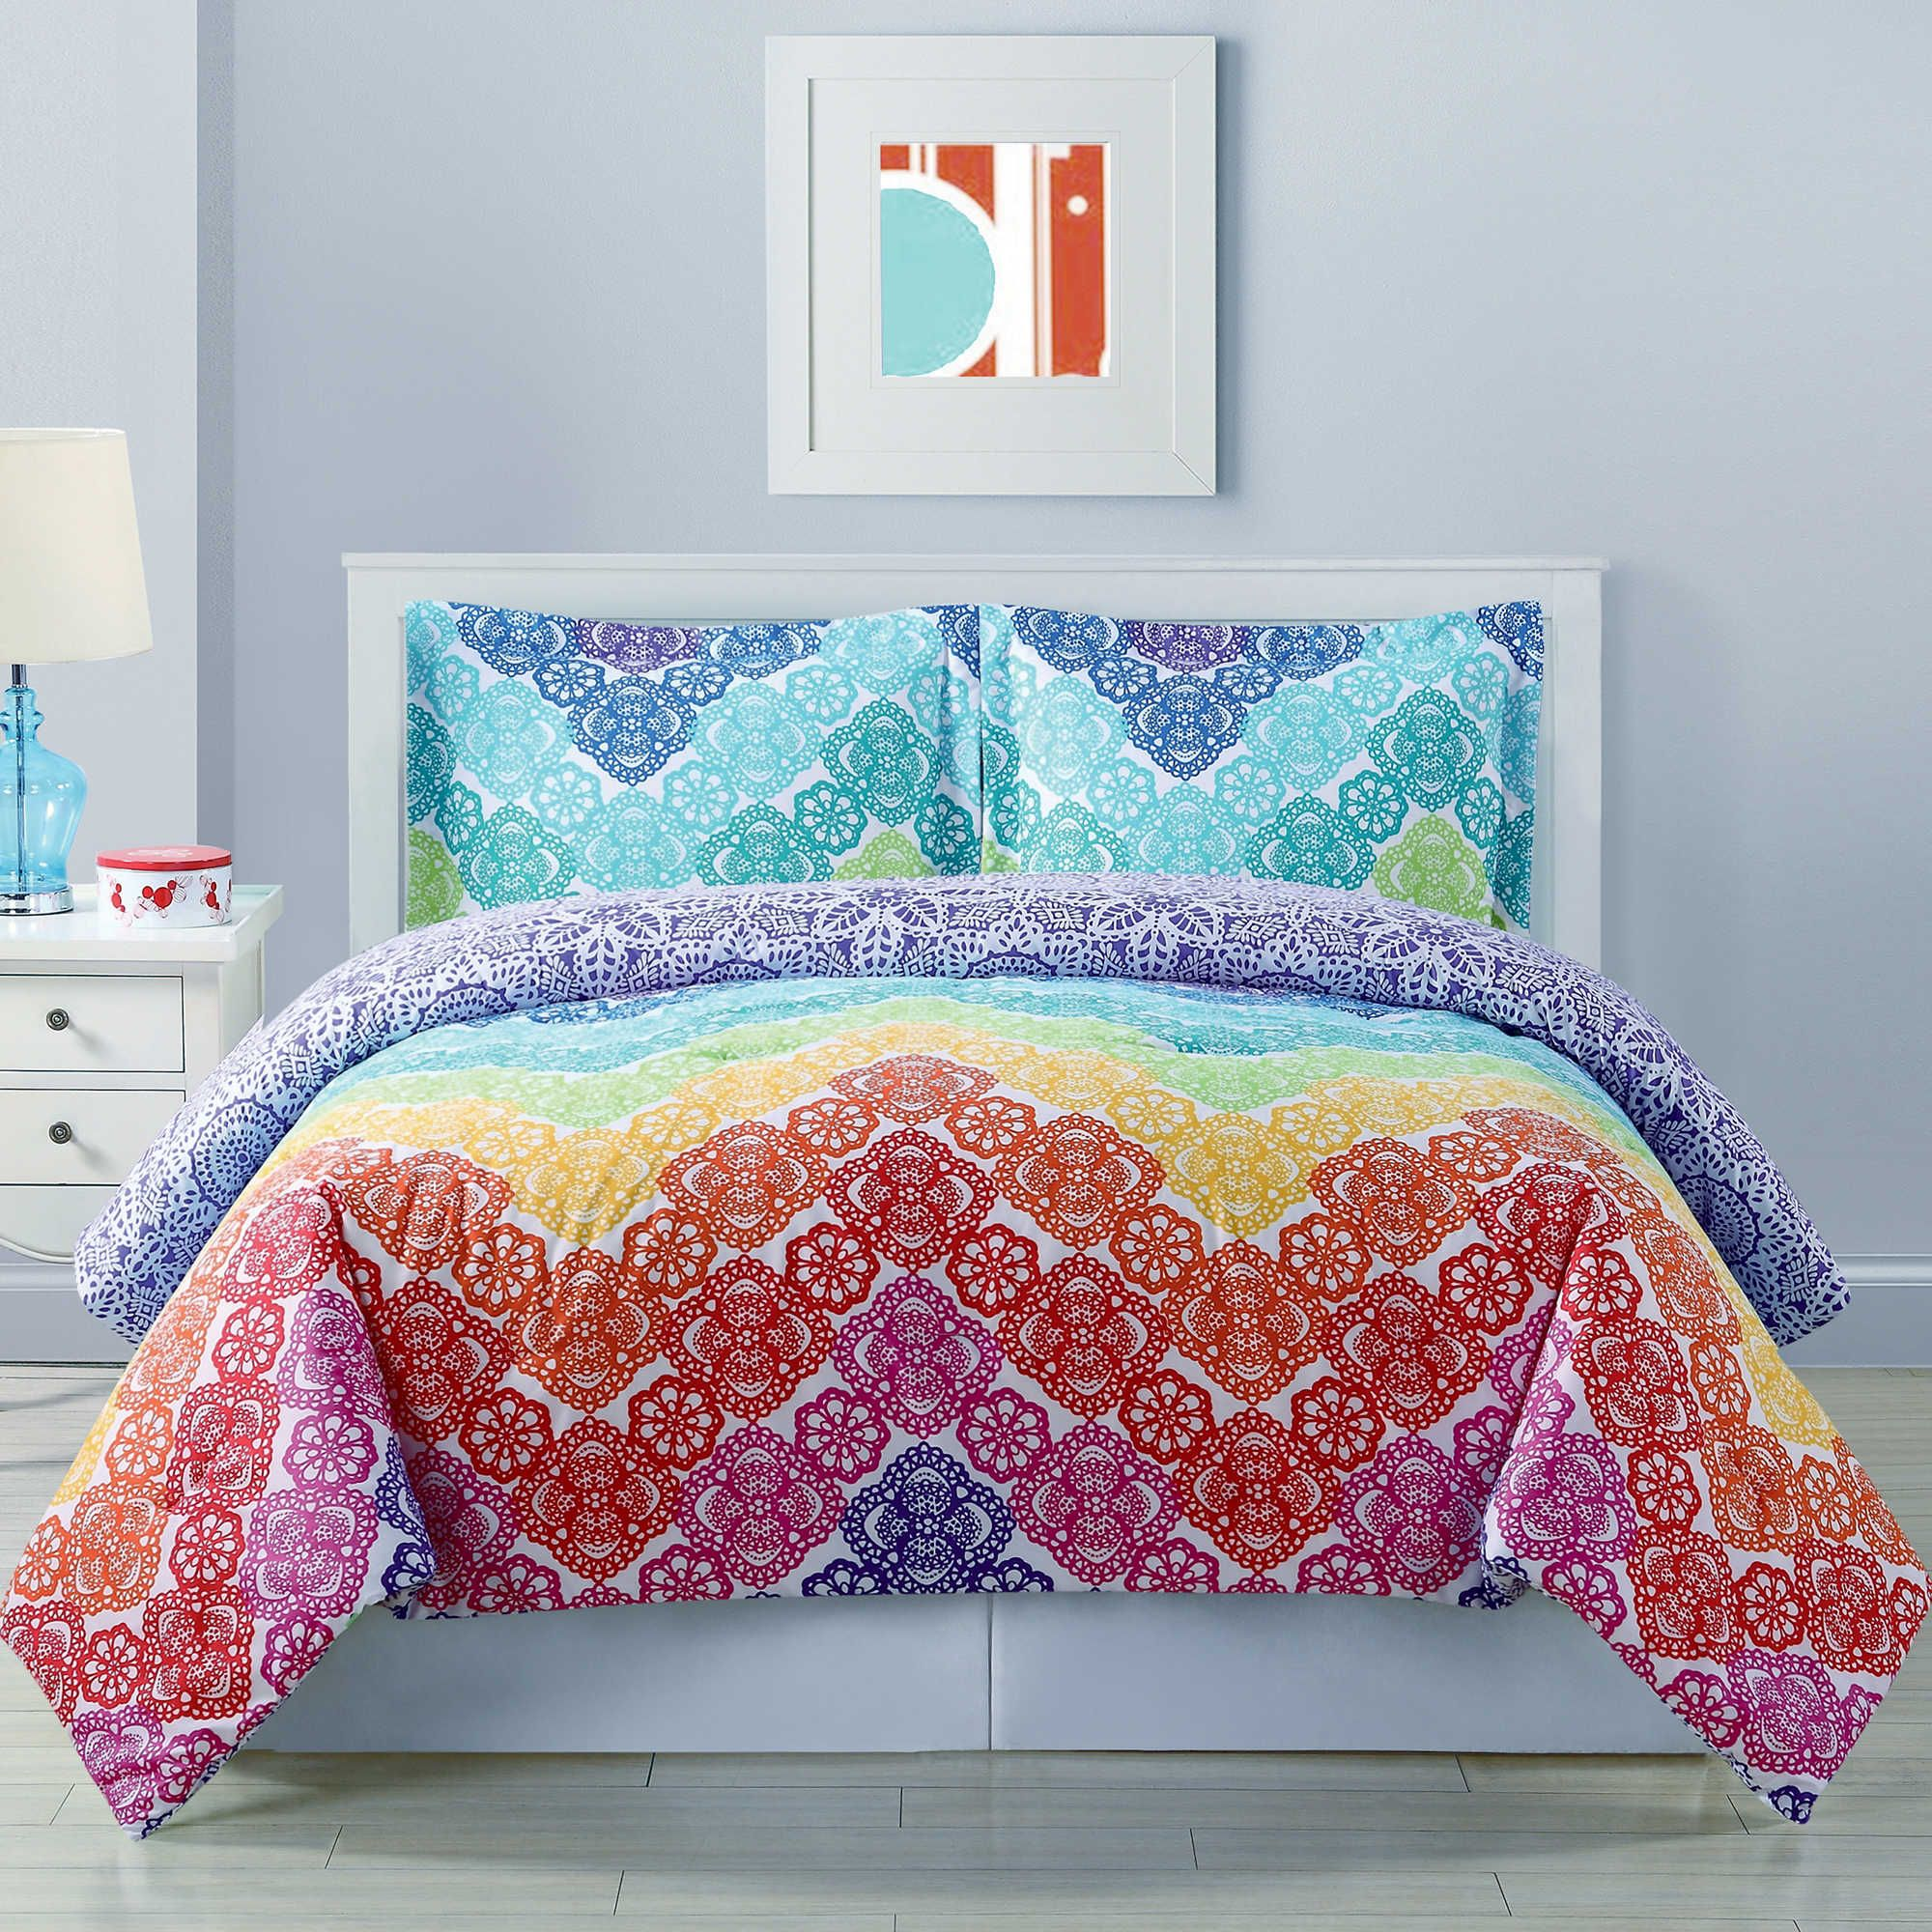 comforter down orange size king bedroom set piece photos home tealing teal red of amazon design chevron kitchen sets fearsome full setsking bedding com